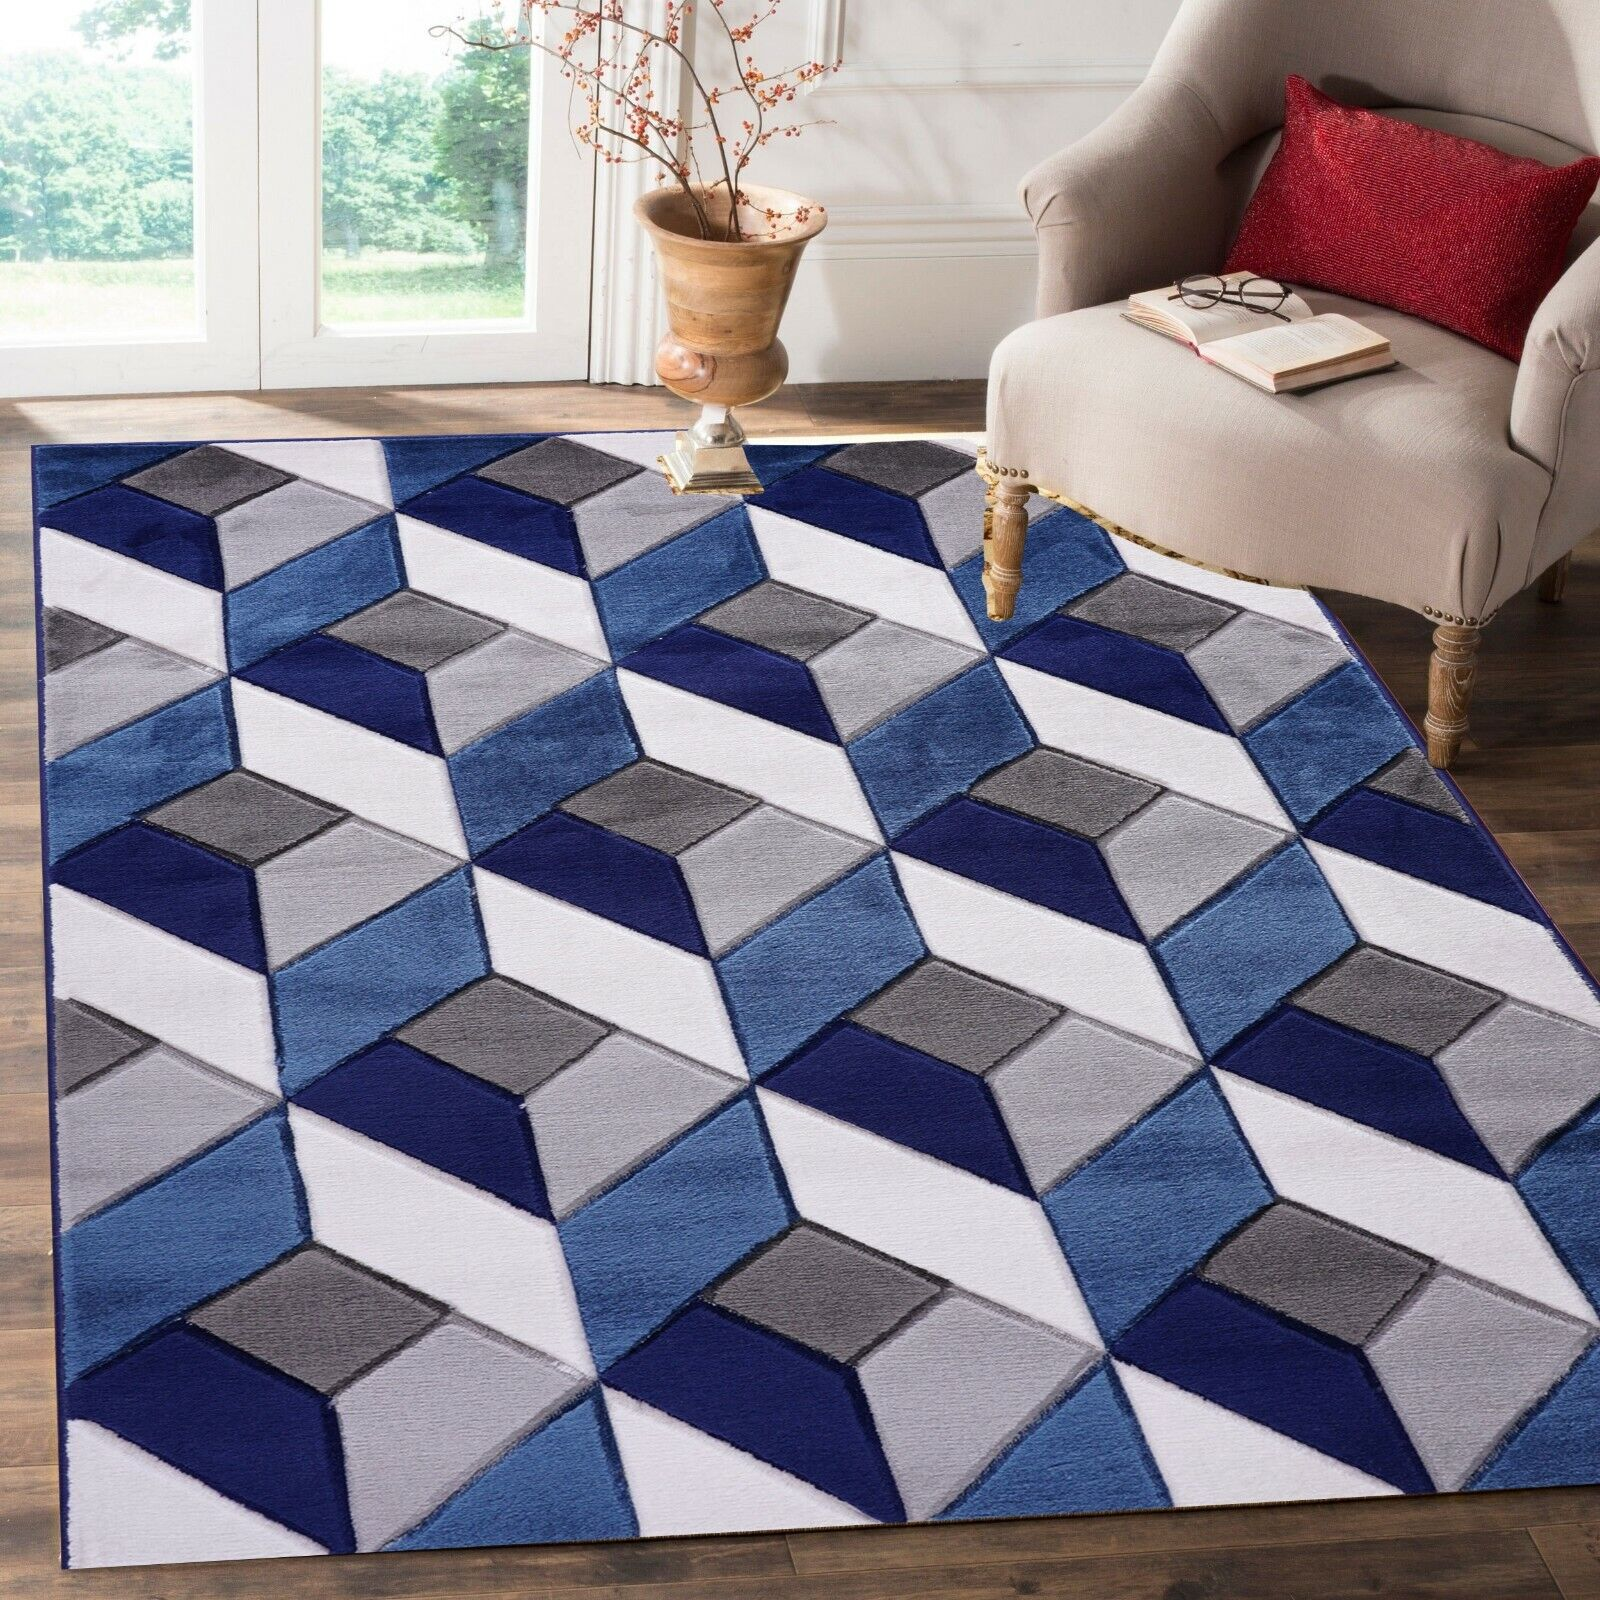 Details About Geometric Living Room Floor Carpets Rug Runner Mats Triangle Pattern Blue Grey